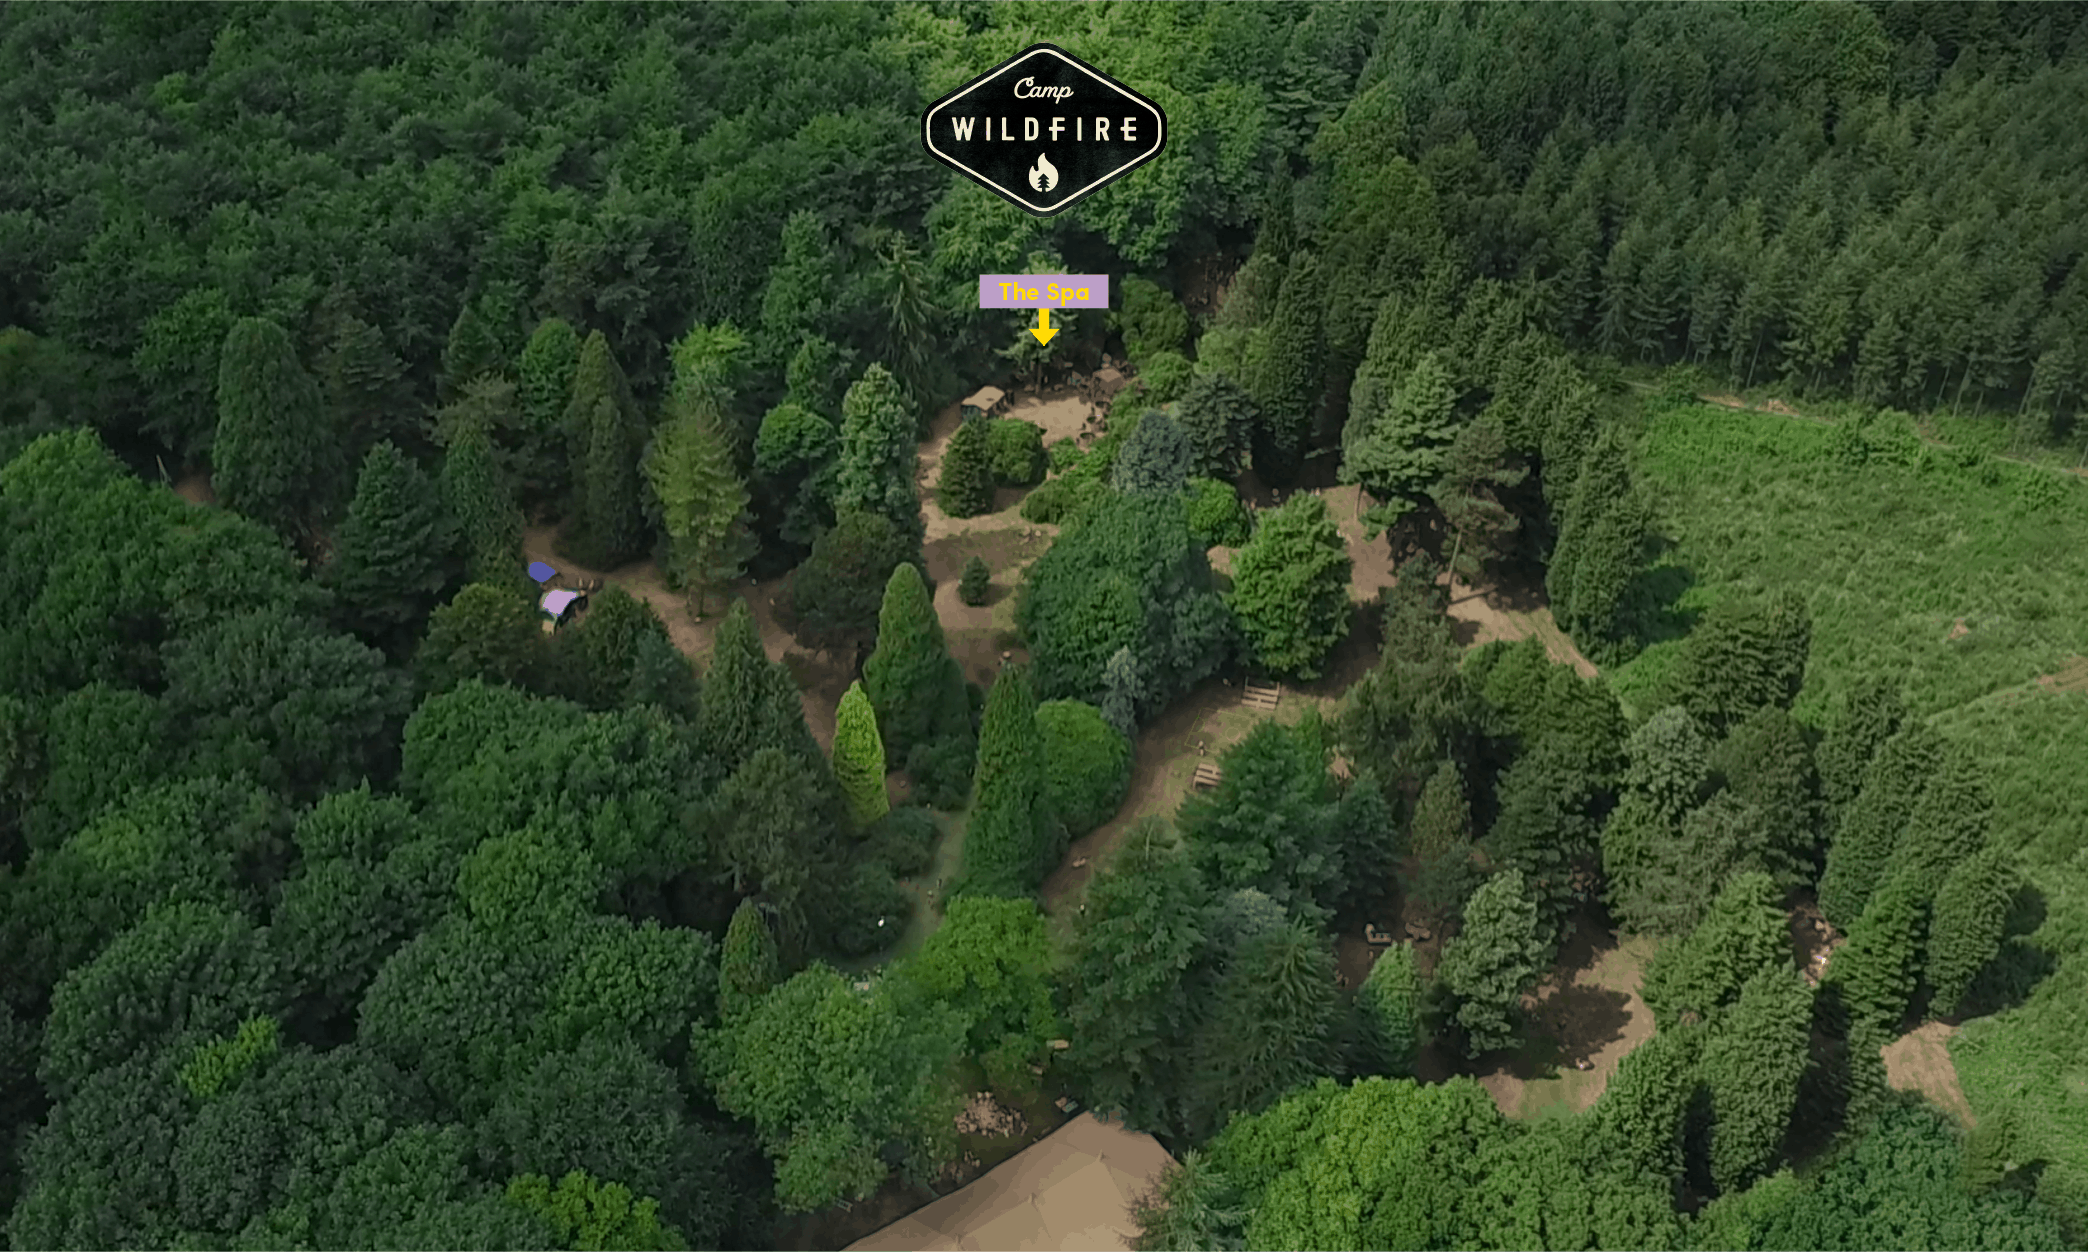 Drone shot of Camp Wildfire. A summer weekend break in a forest near London and Kent. An outdoor woodland retreat featuring adventure activities, live music, DJs, parties and camping. Half summer adventure activity camp, half music festival, for adults only.